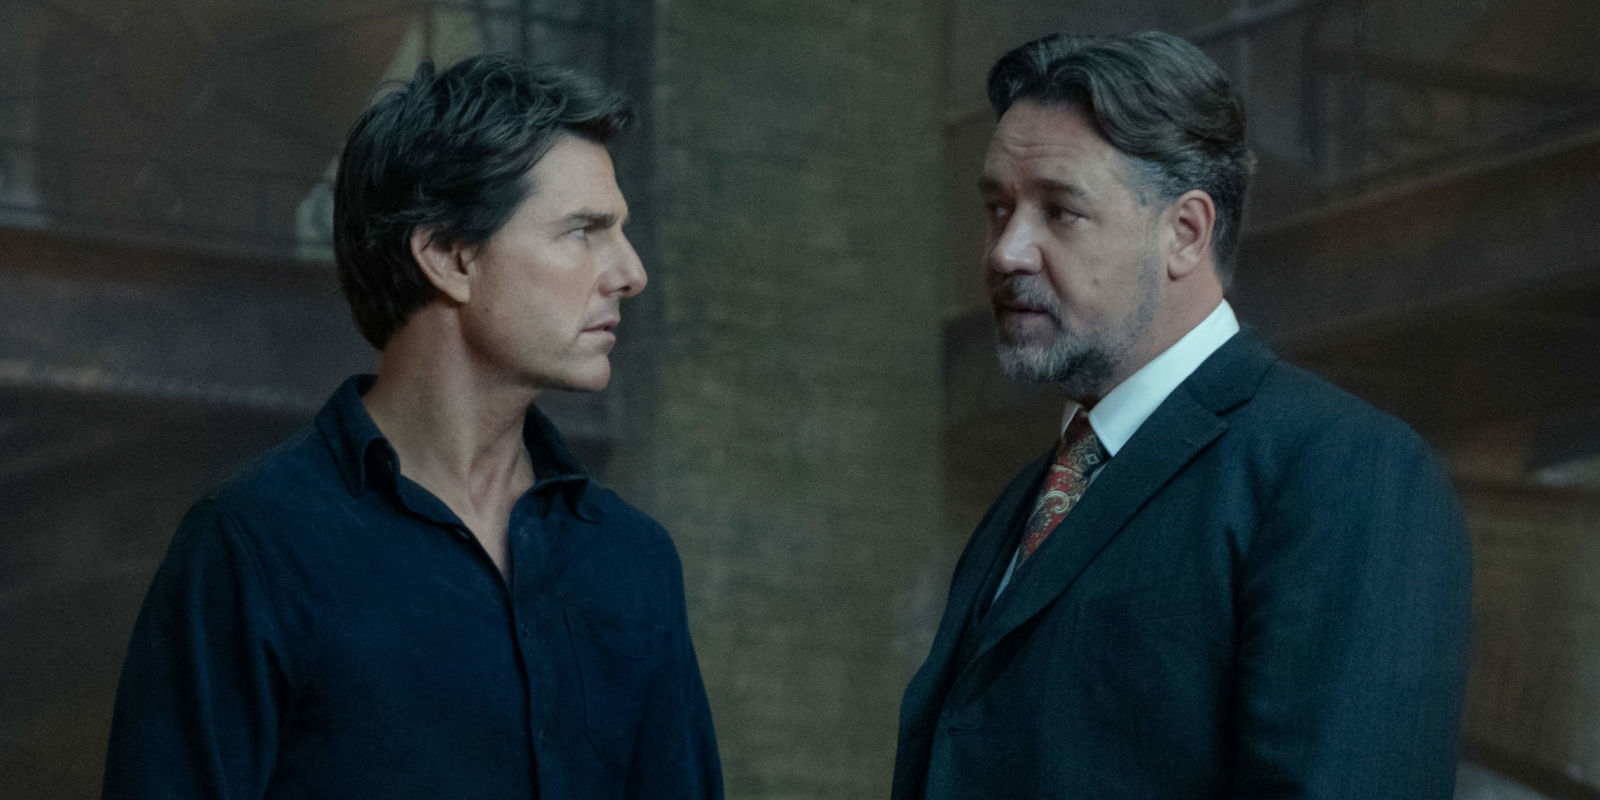 Tom Cruise as Nick Morton meets Dr Jekyll (Russell Crowe) in The Mummy (2017)